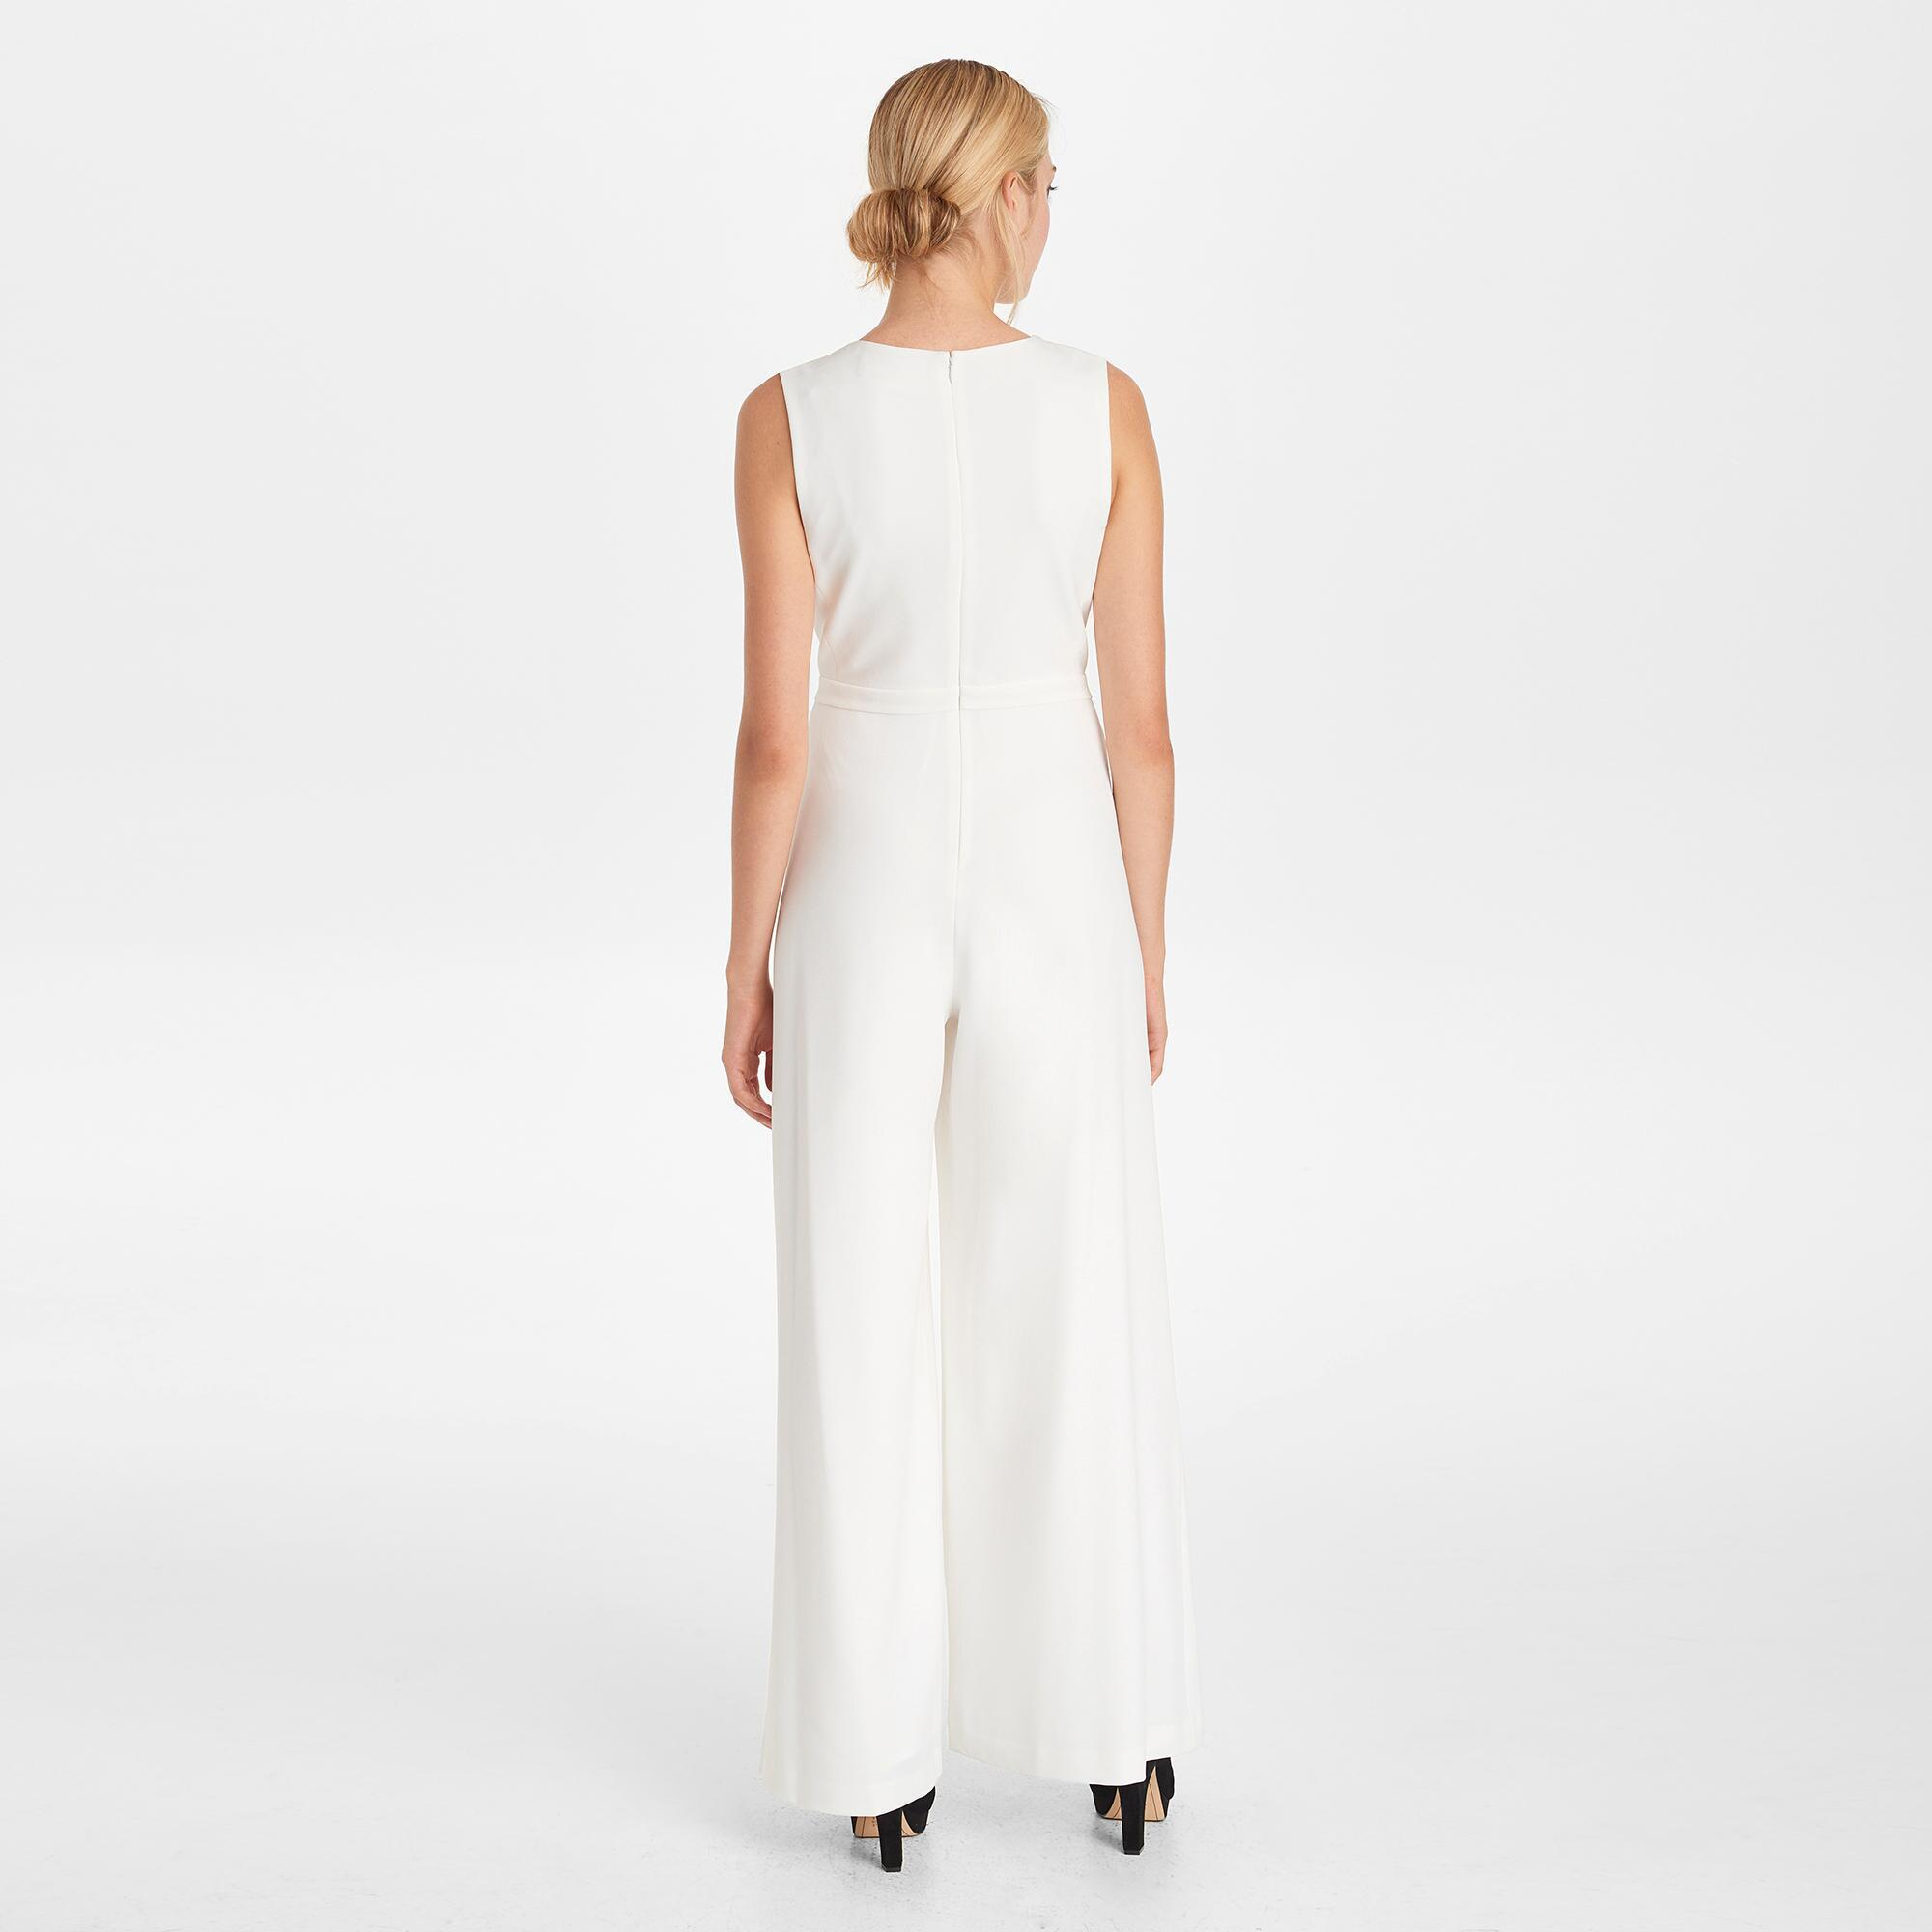 3ca2d63d83c Karl Lagerfeld - White Jumpsuit With Tie Neck - Lyst. View fullscreen